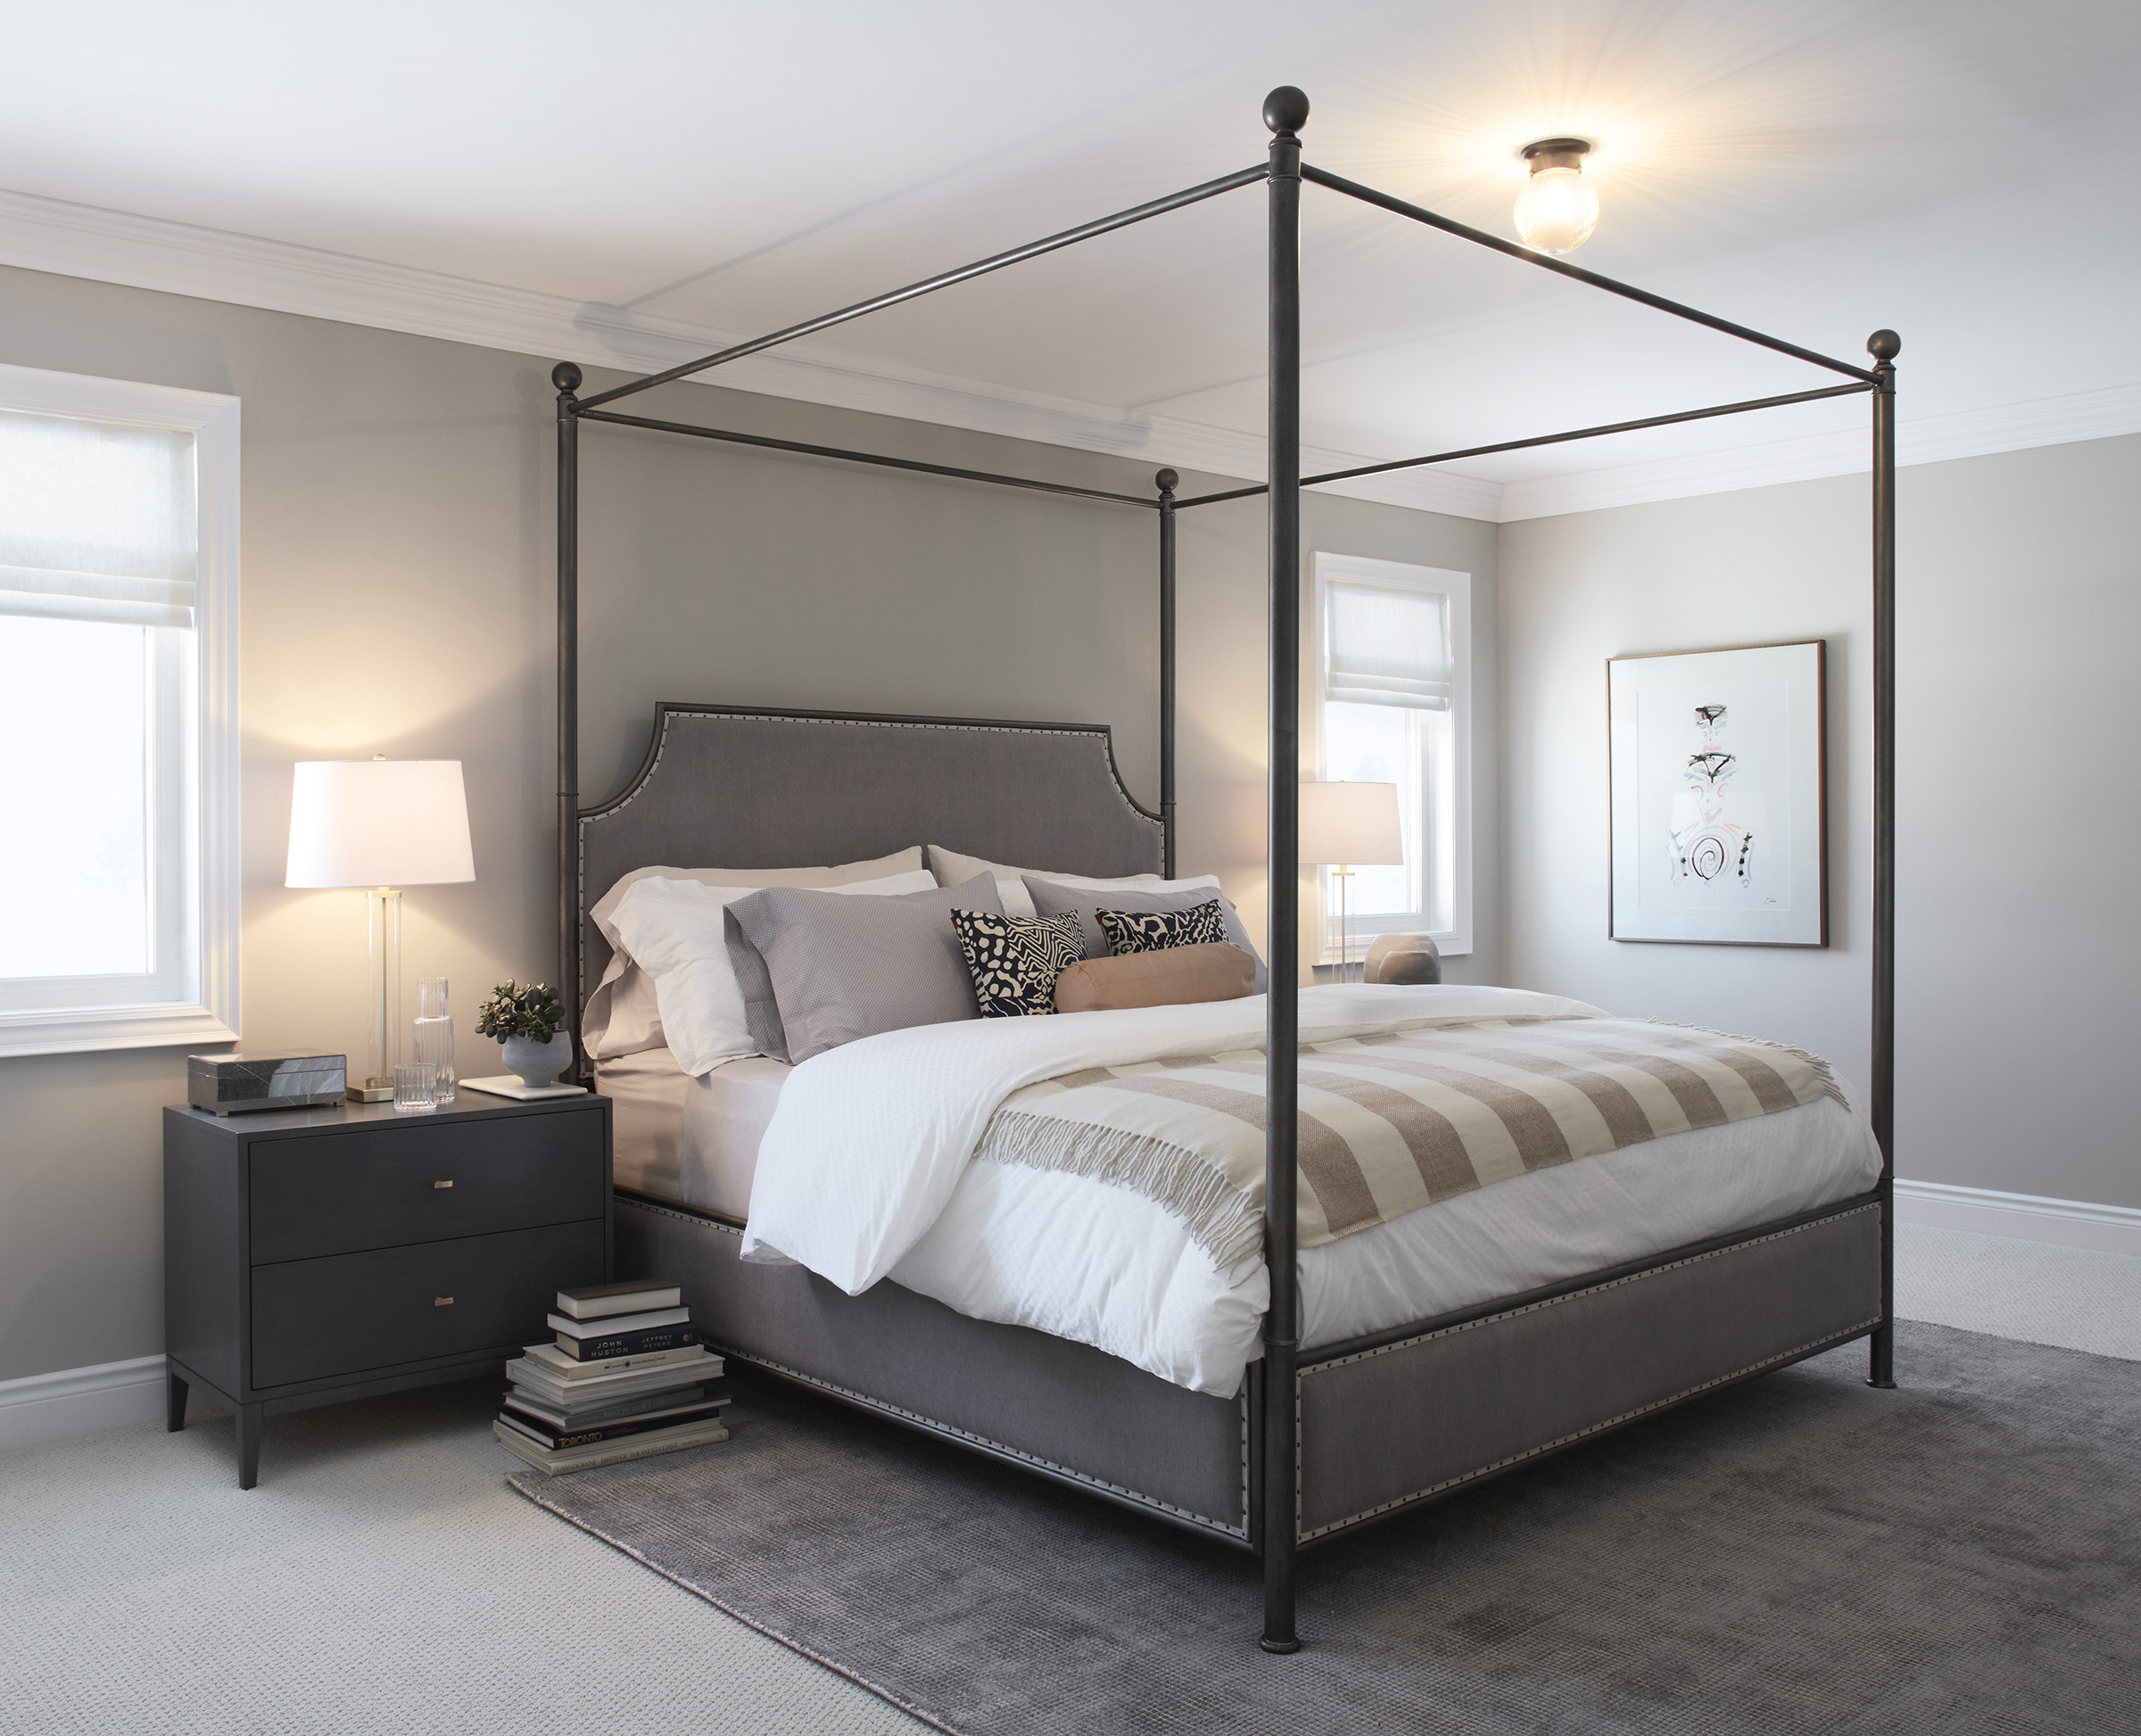 Manor Estate master bedroom with four poster bed, neutral bedding, and grey rug